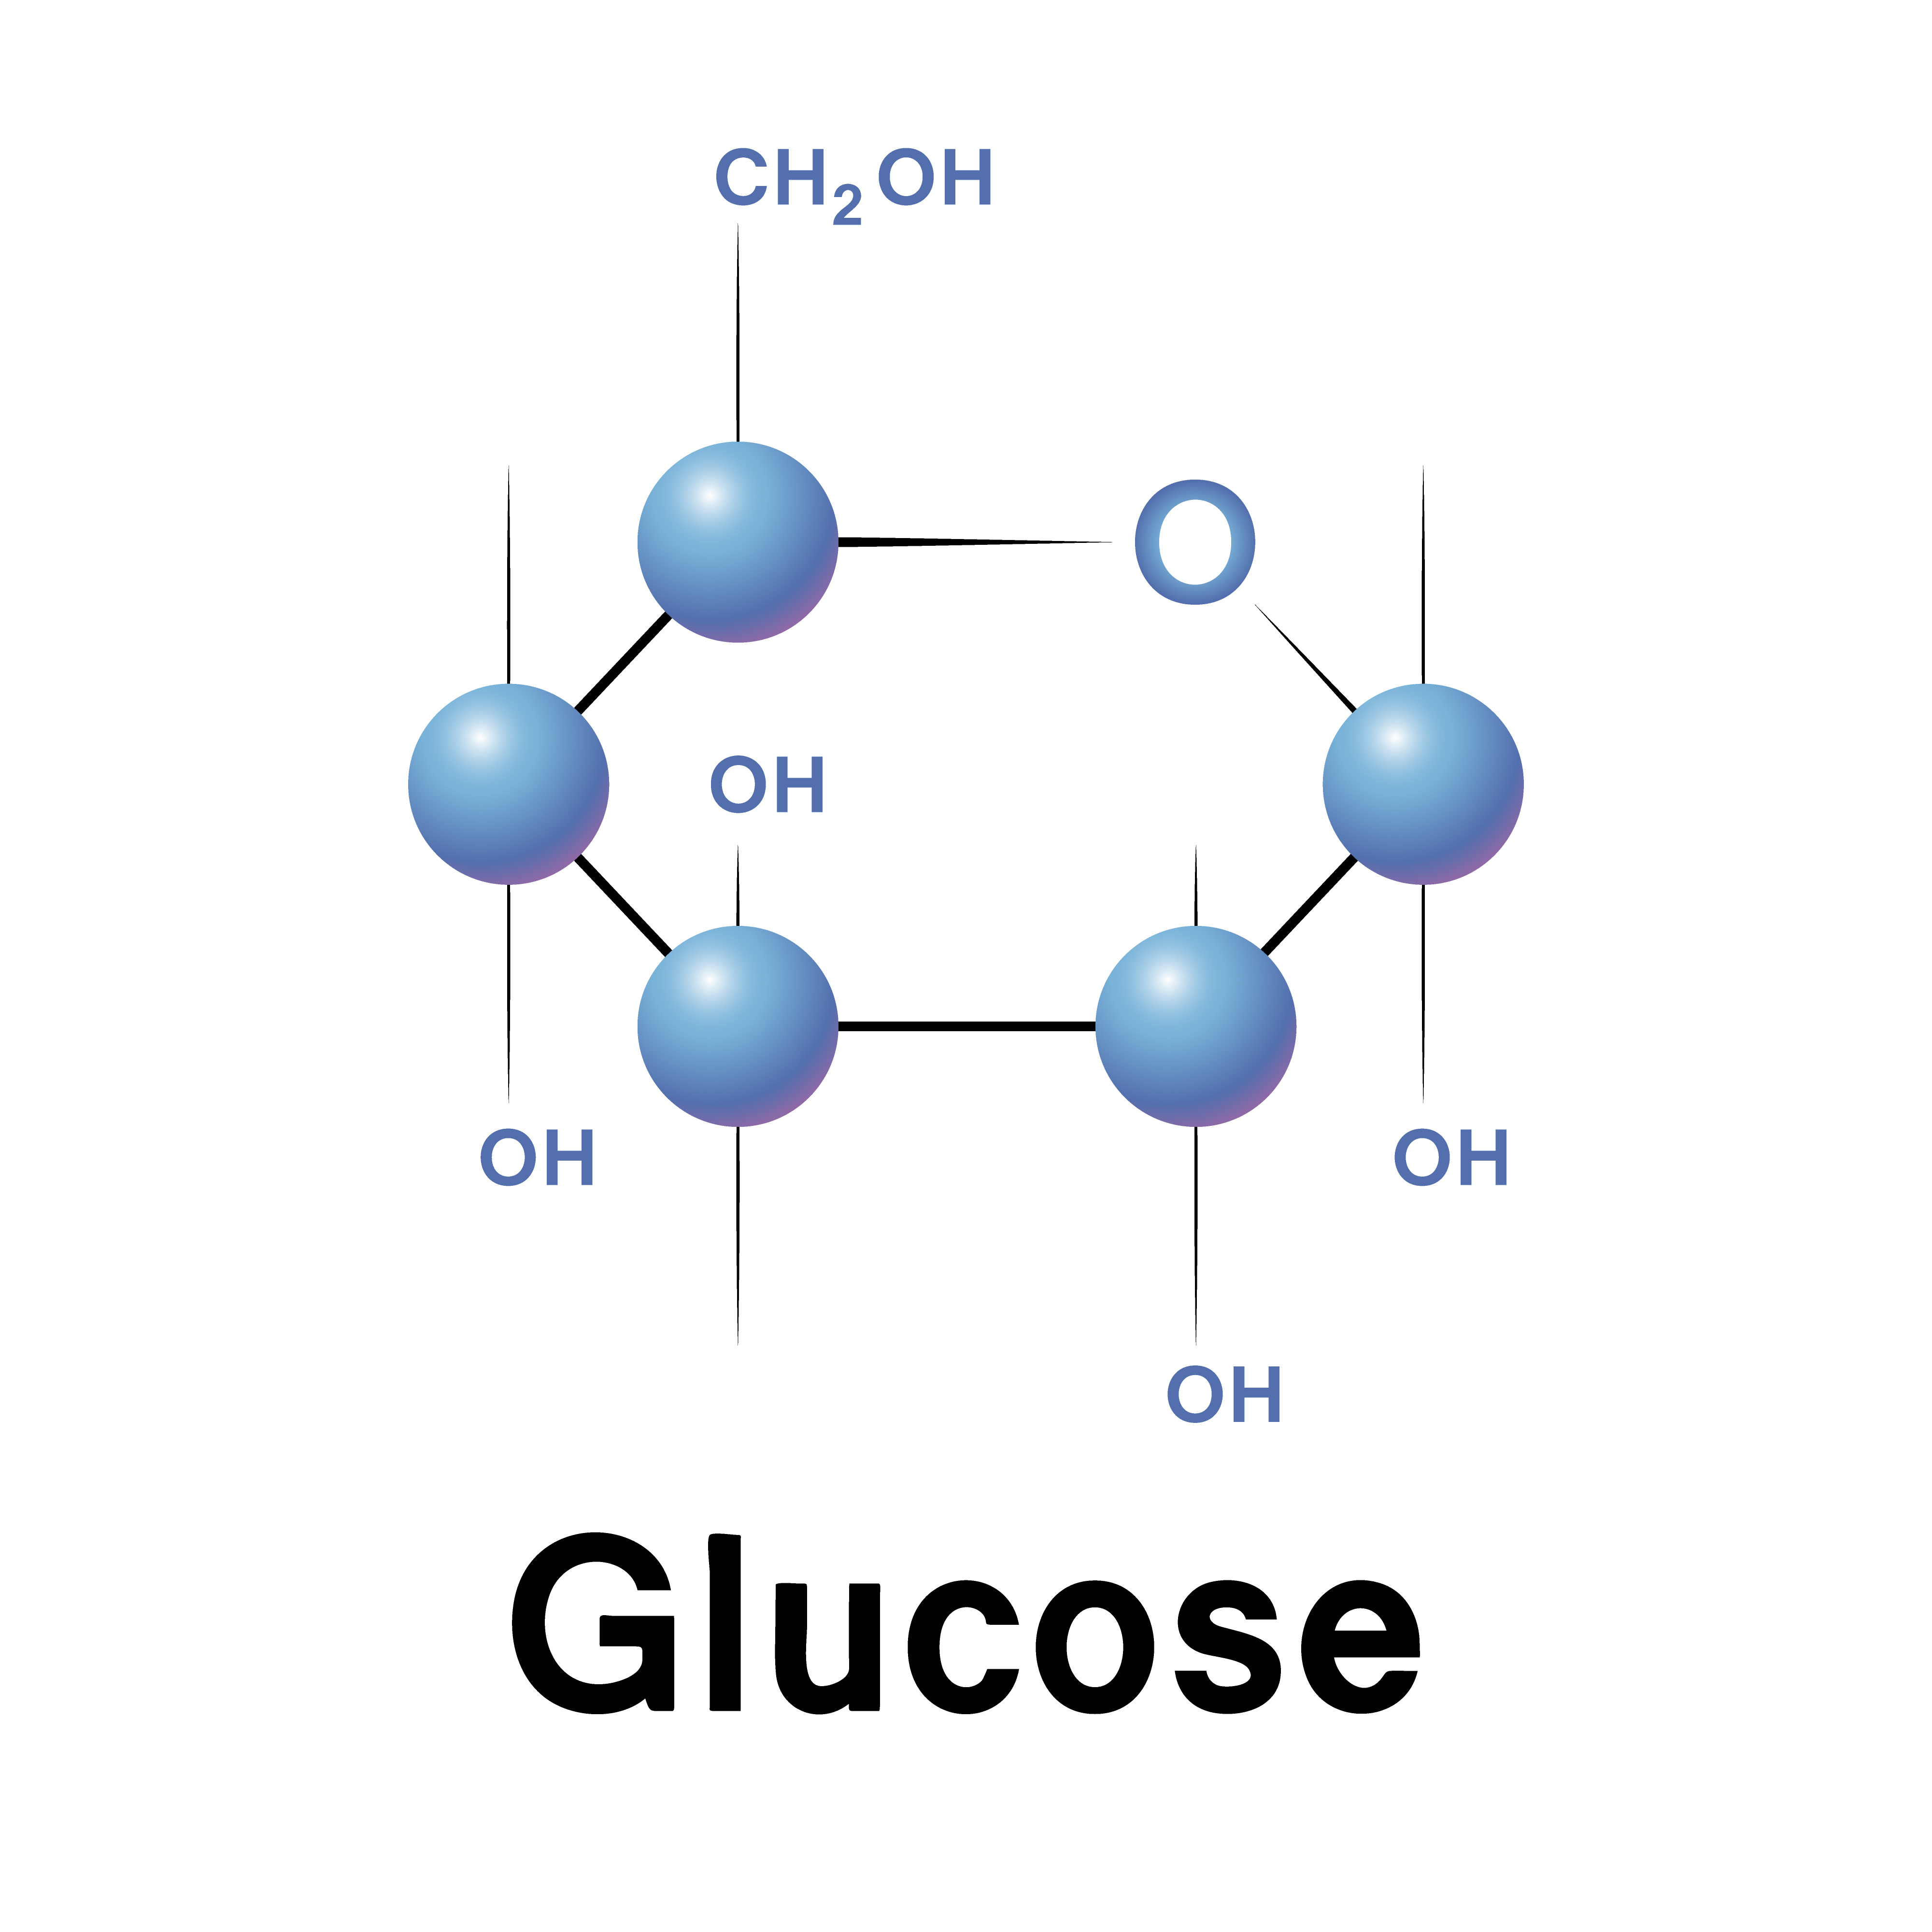 Altering Runners Glucose Levels To Avoid Hitting The